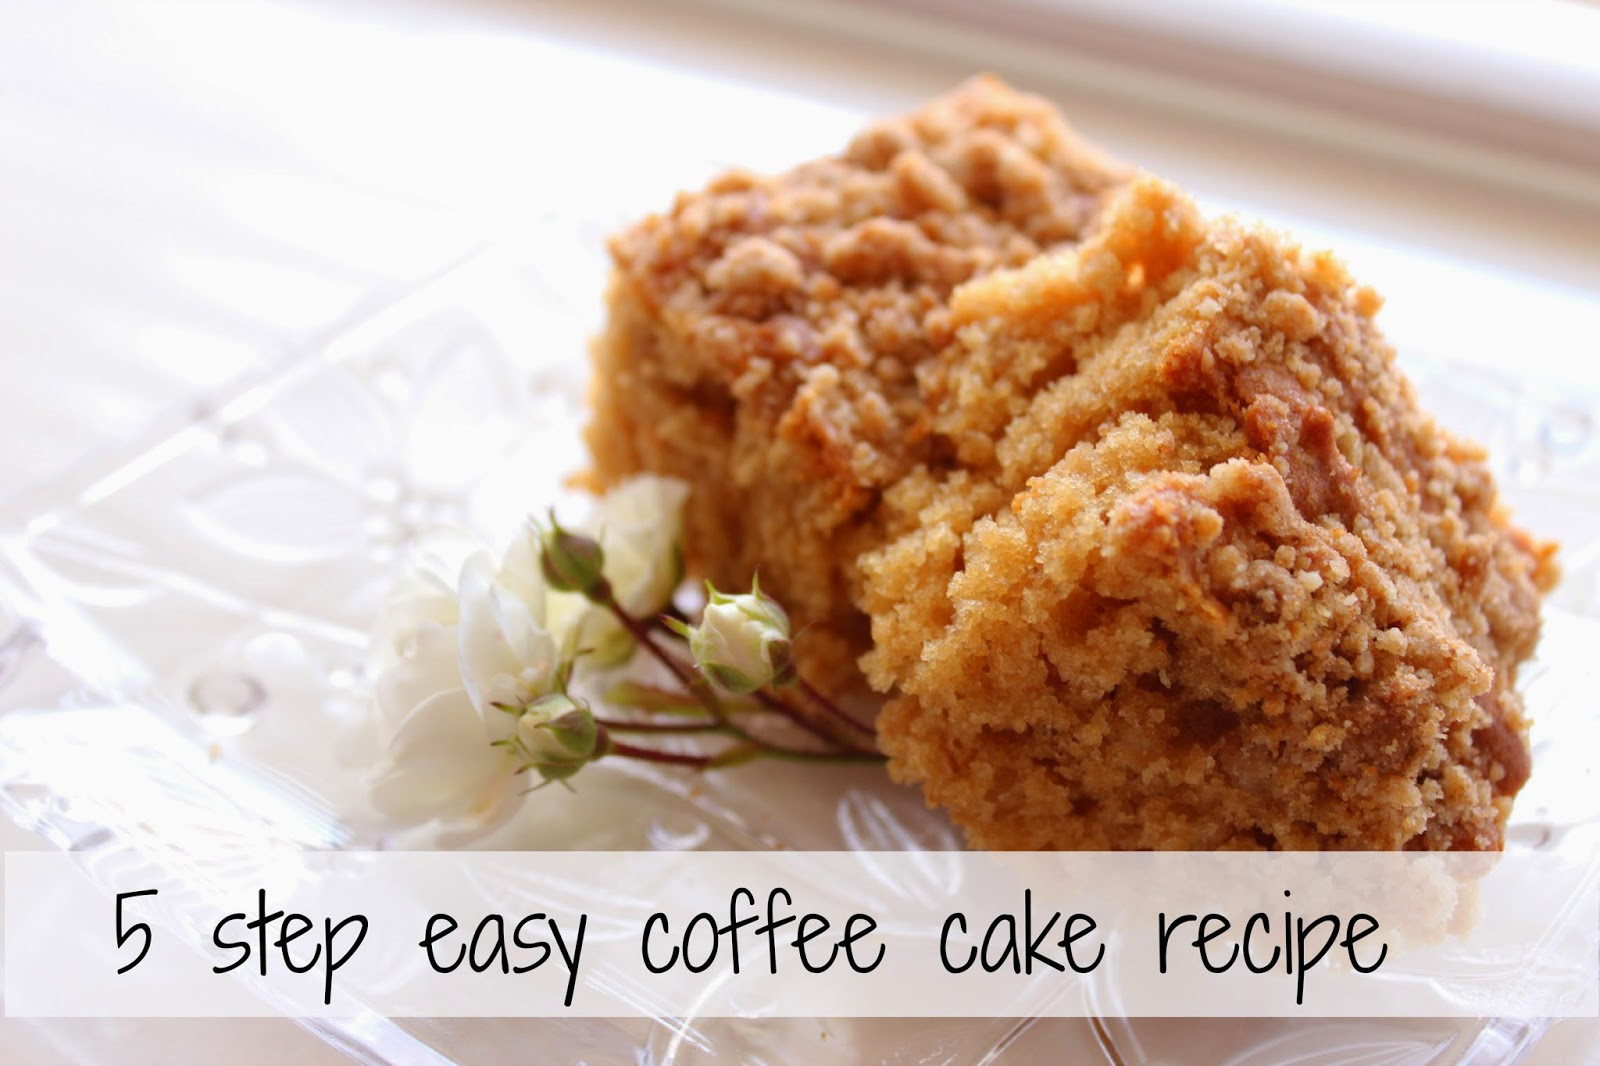 Coffee Cake Recipe Easy  5 step easy coffee cake recipe